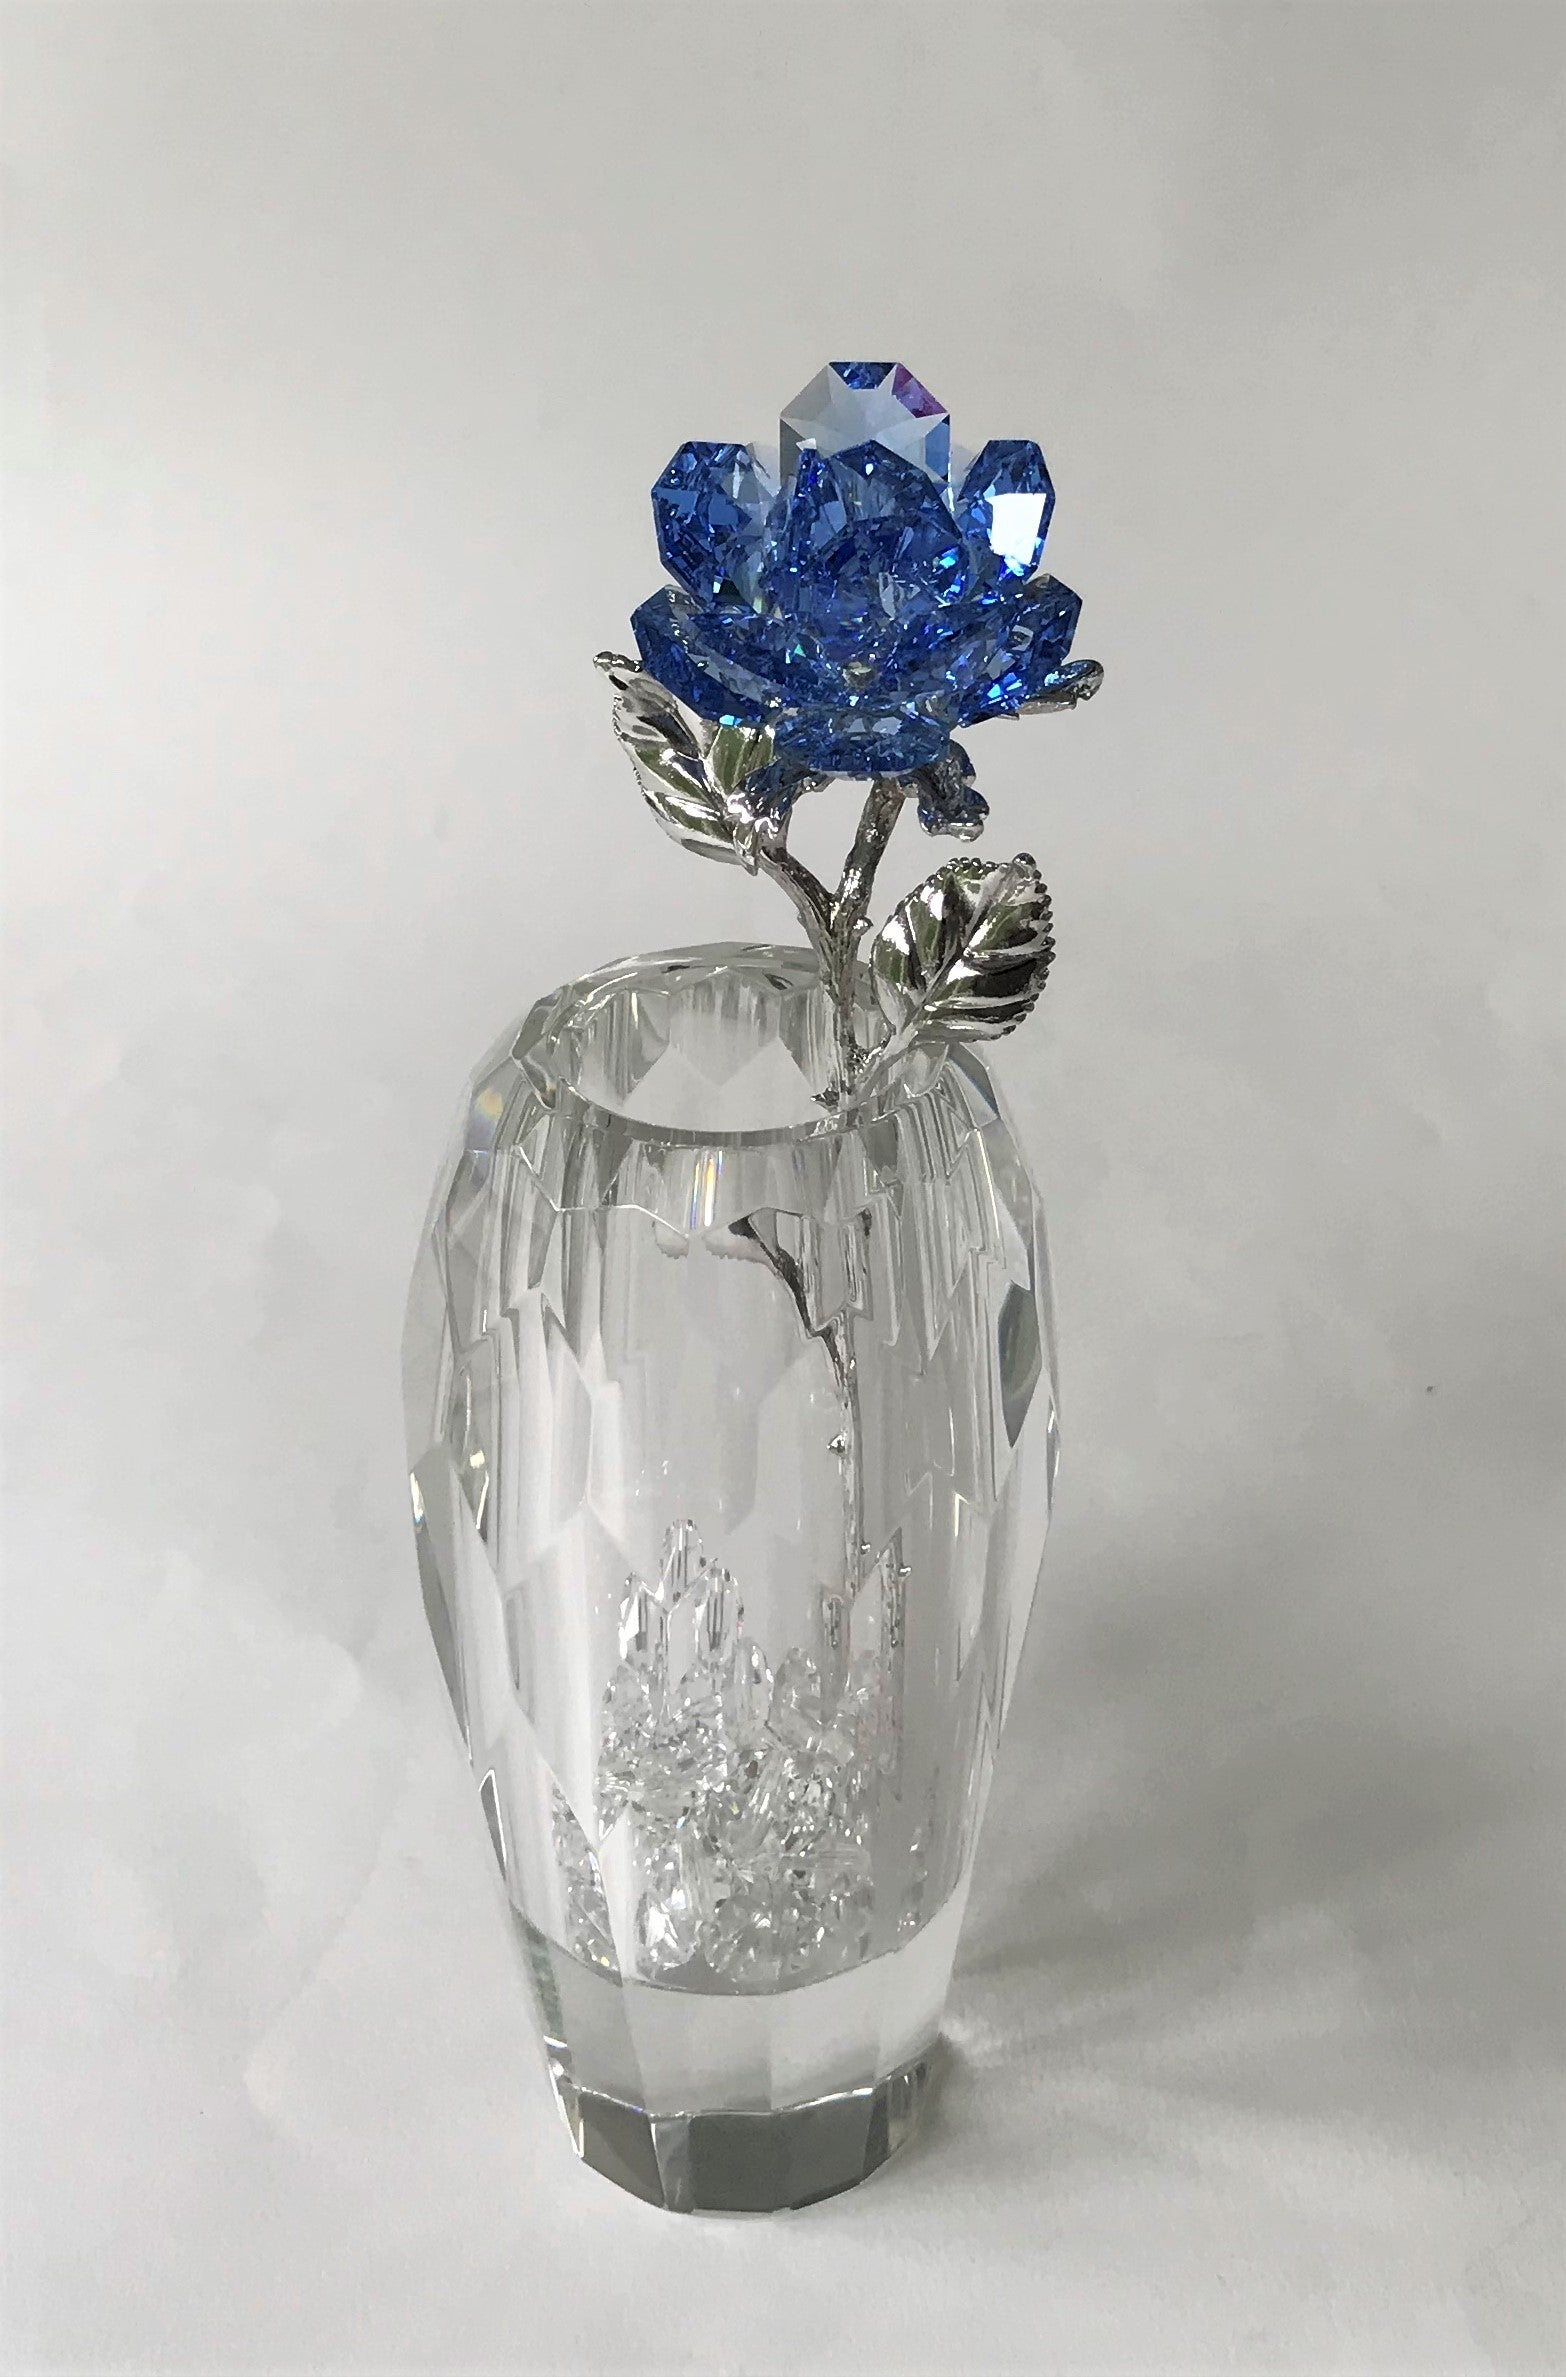 Blue Crystal Rose Handcrafted By Bjcrystalgifts Using Swarovski Crystals In A Faceted Crystal Vase